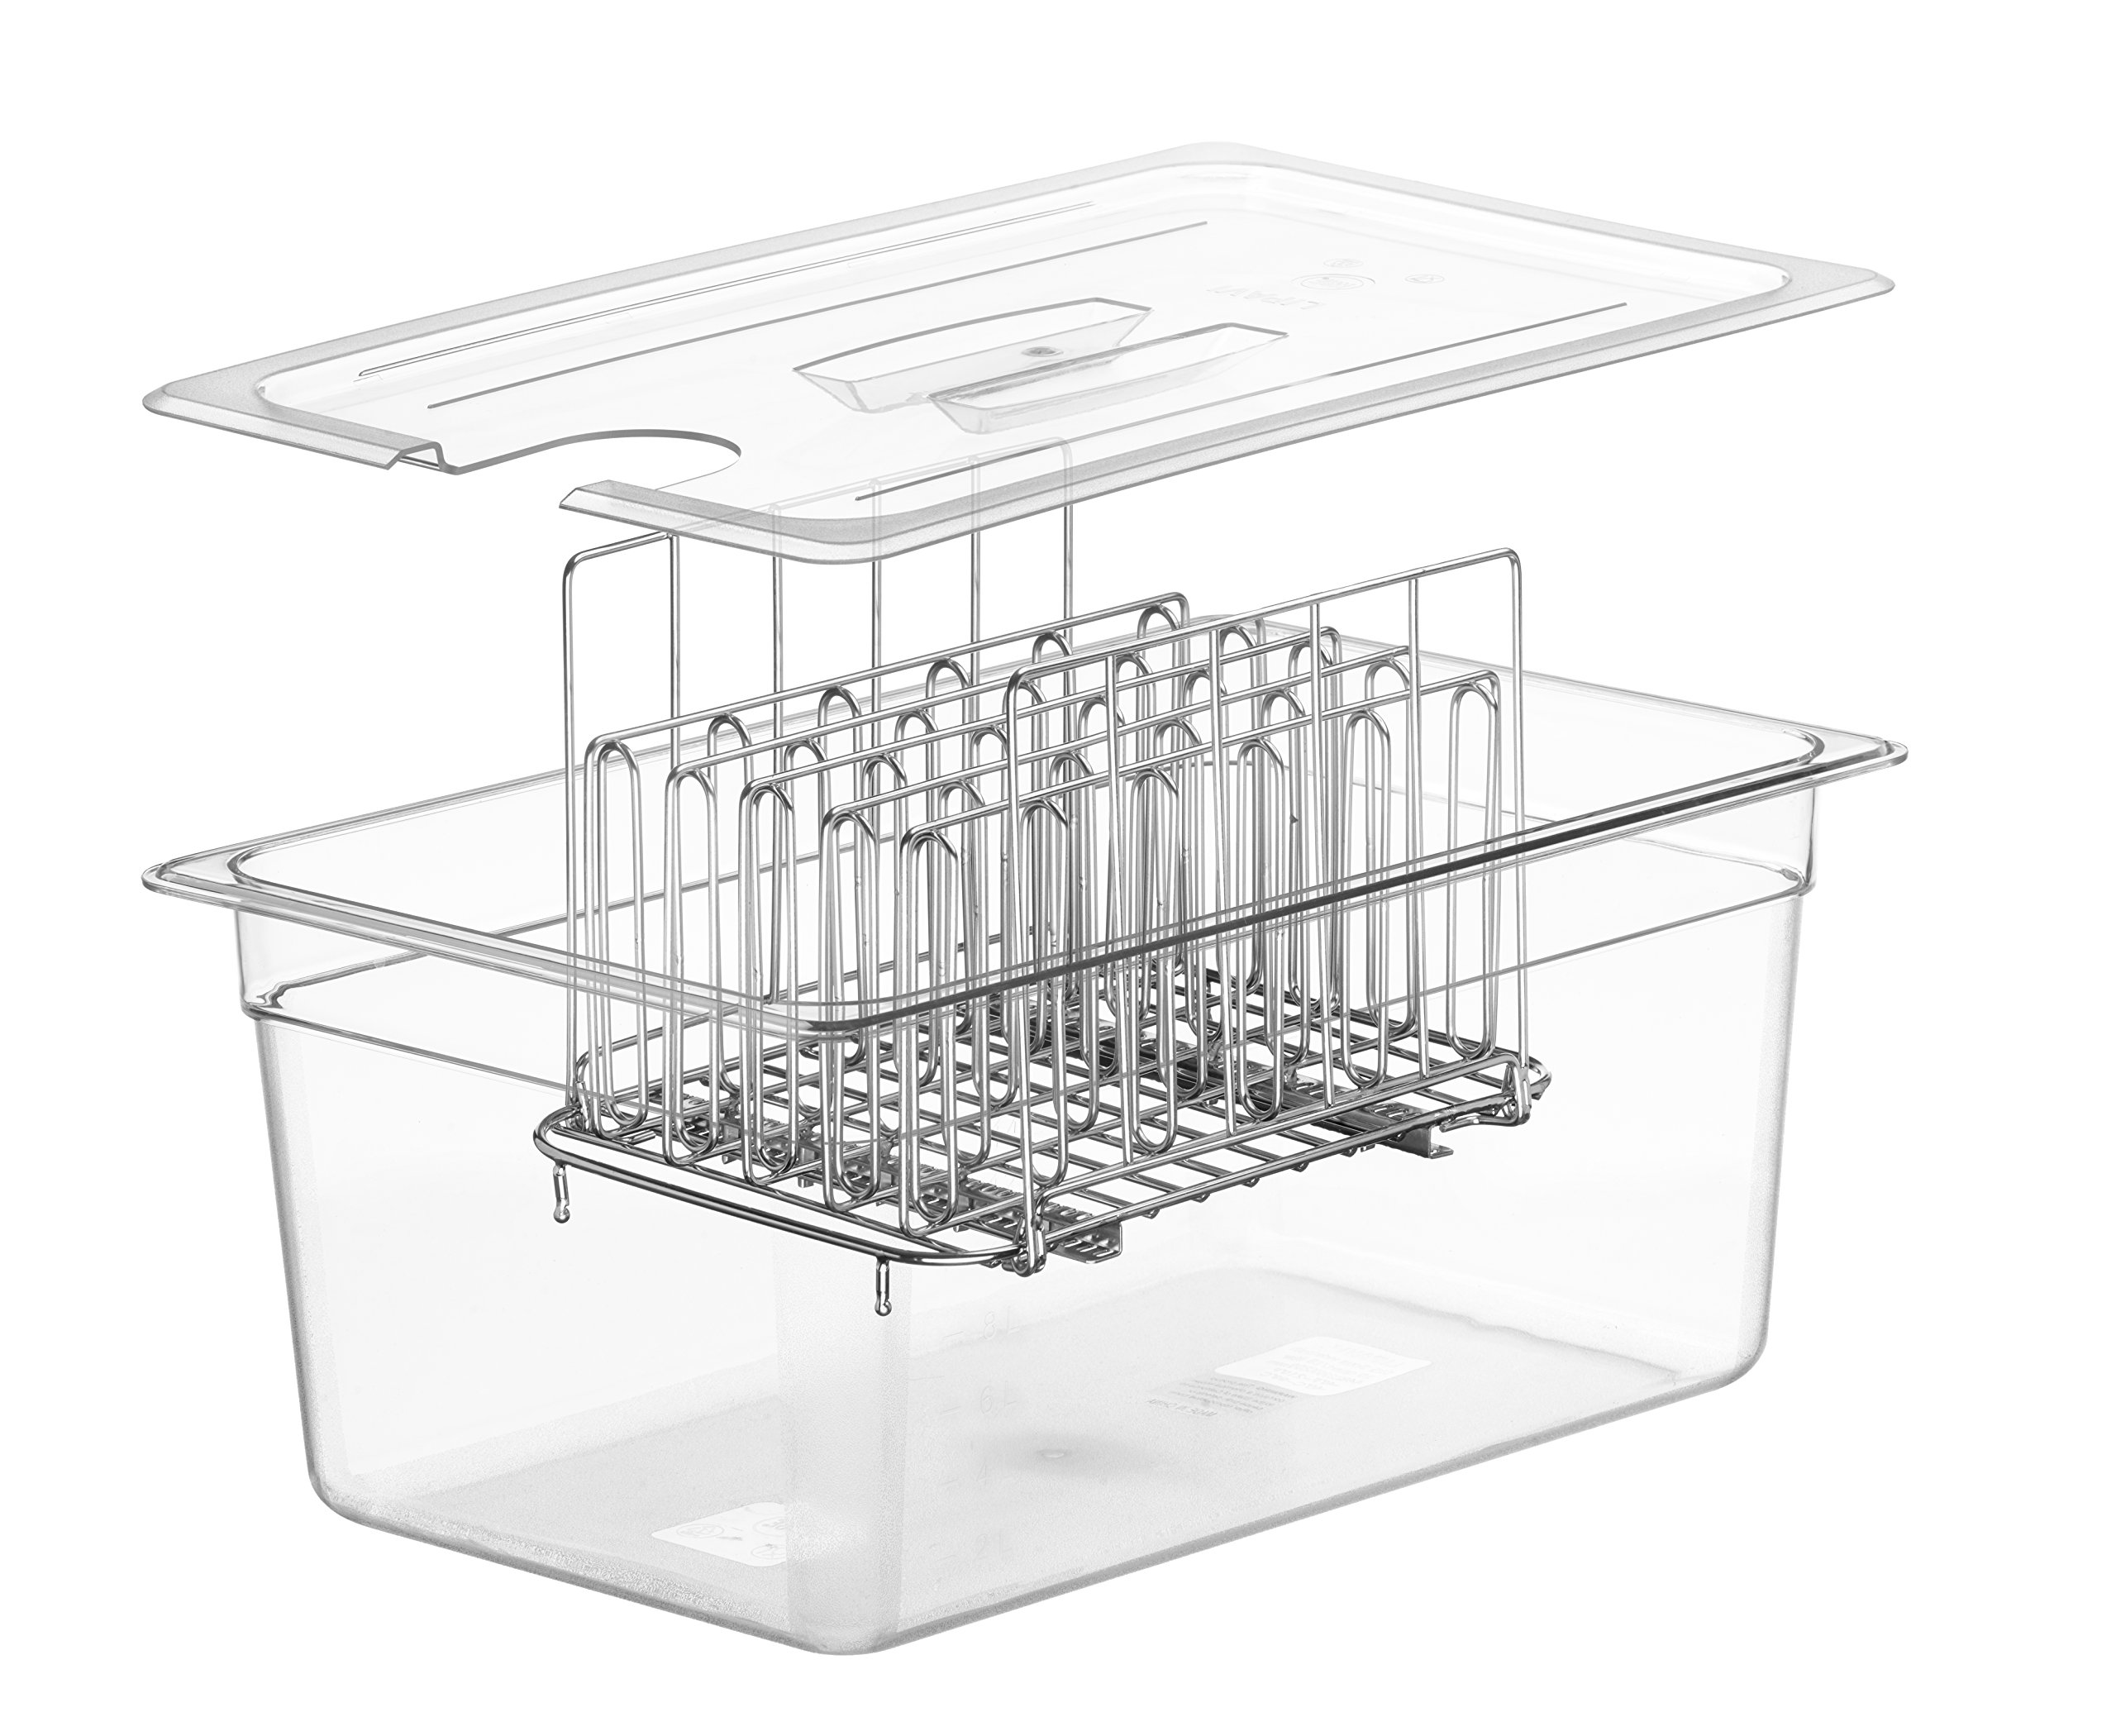 LIPAVI Sous Vide Rack - Model L15 - Marine Quality 316L Stainless Steel - Square 10.8 x 8 Inch - Adjustable, Collapsible, Ensures even and Quick warming - Fits LIPAVI C15 Container by LIPAVI (Image #6)